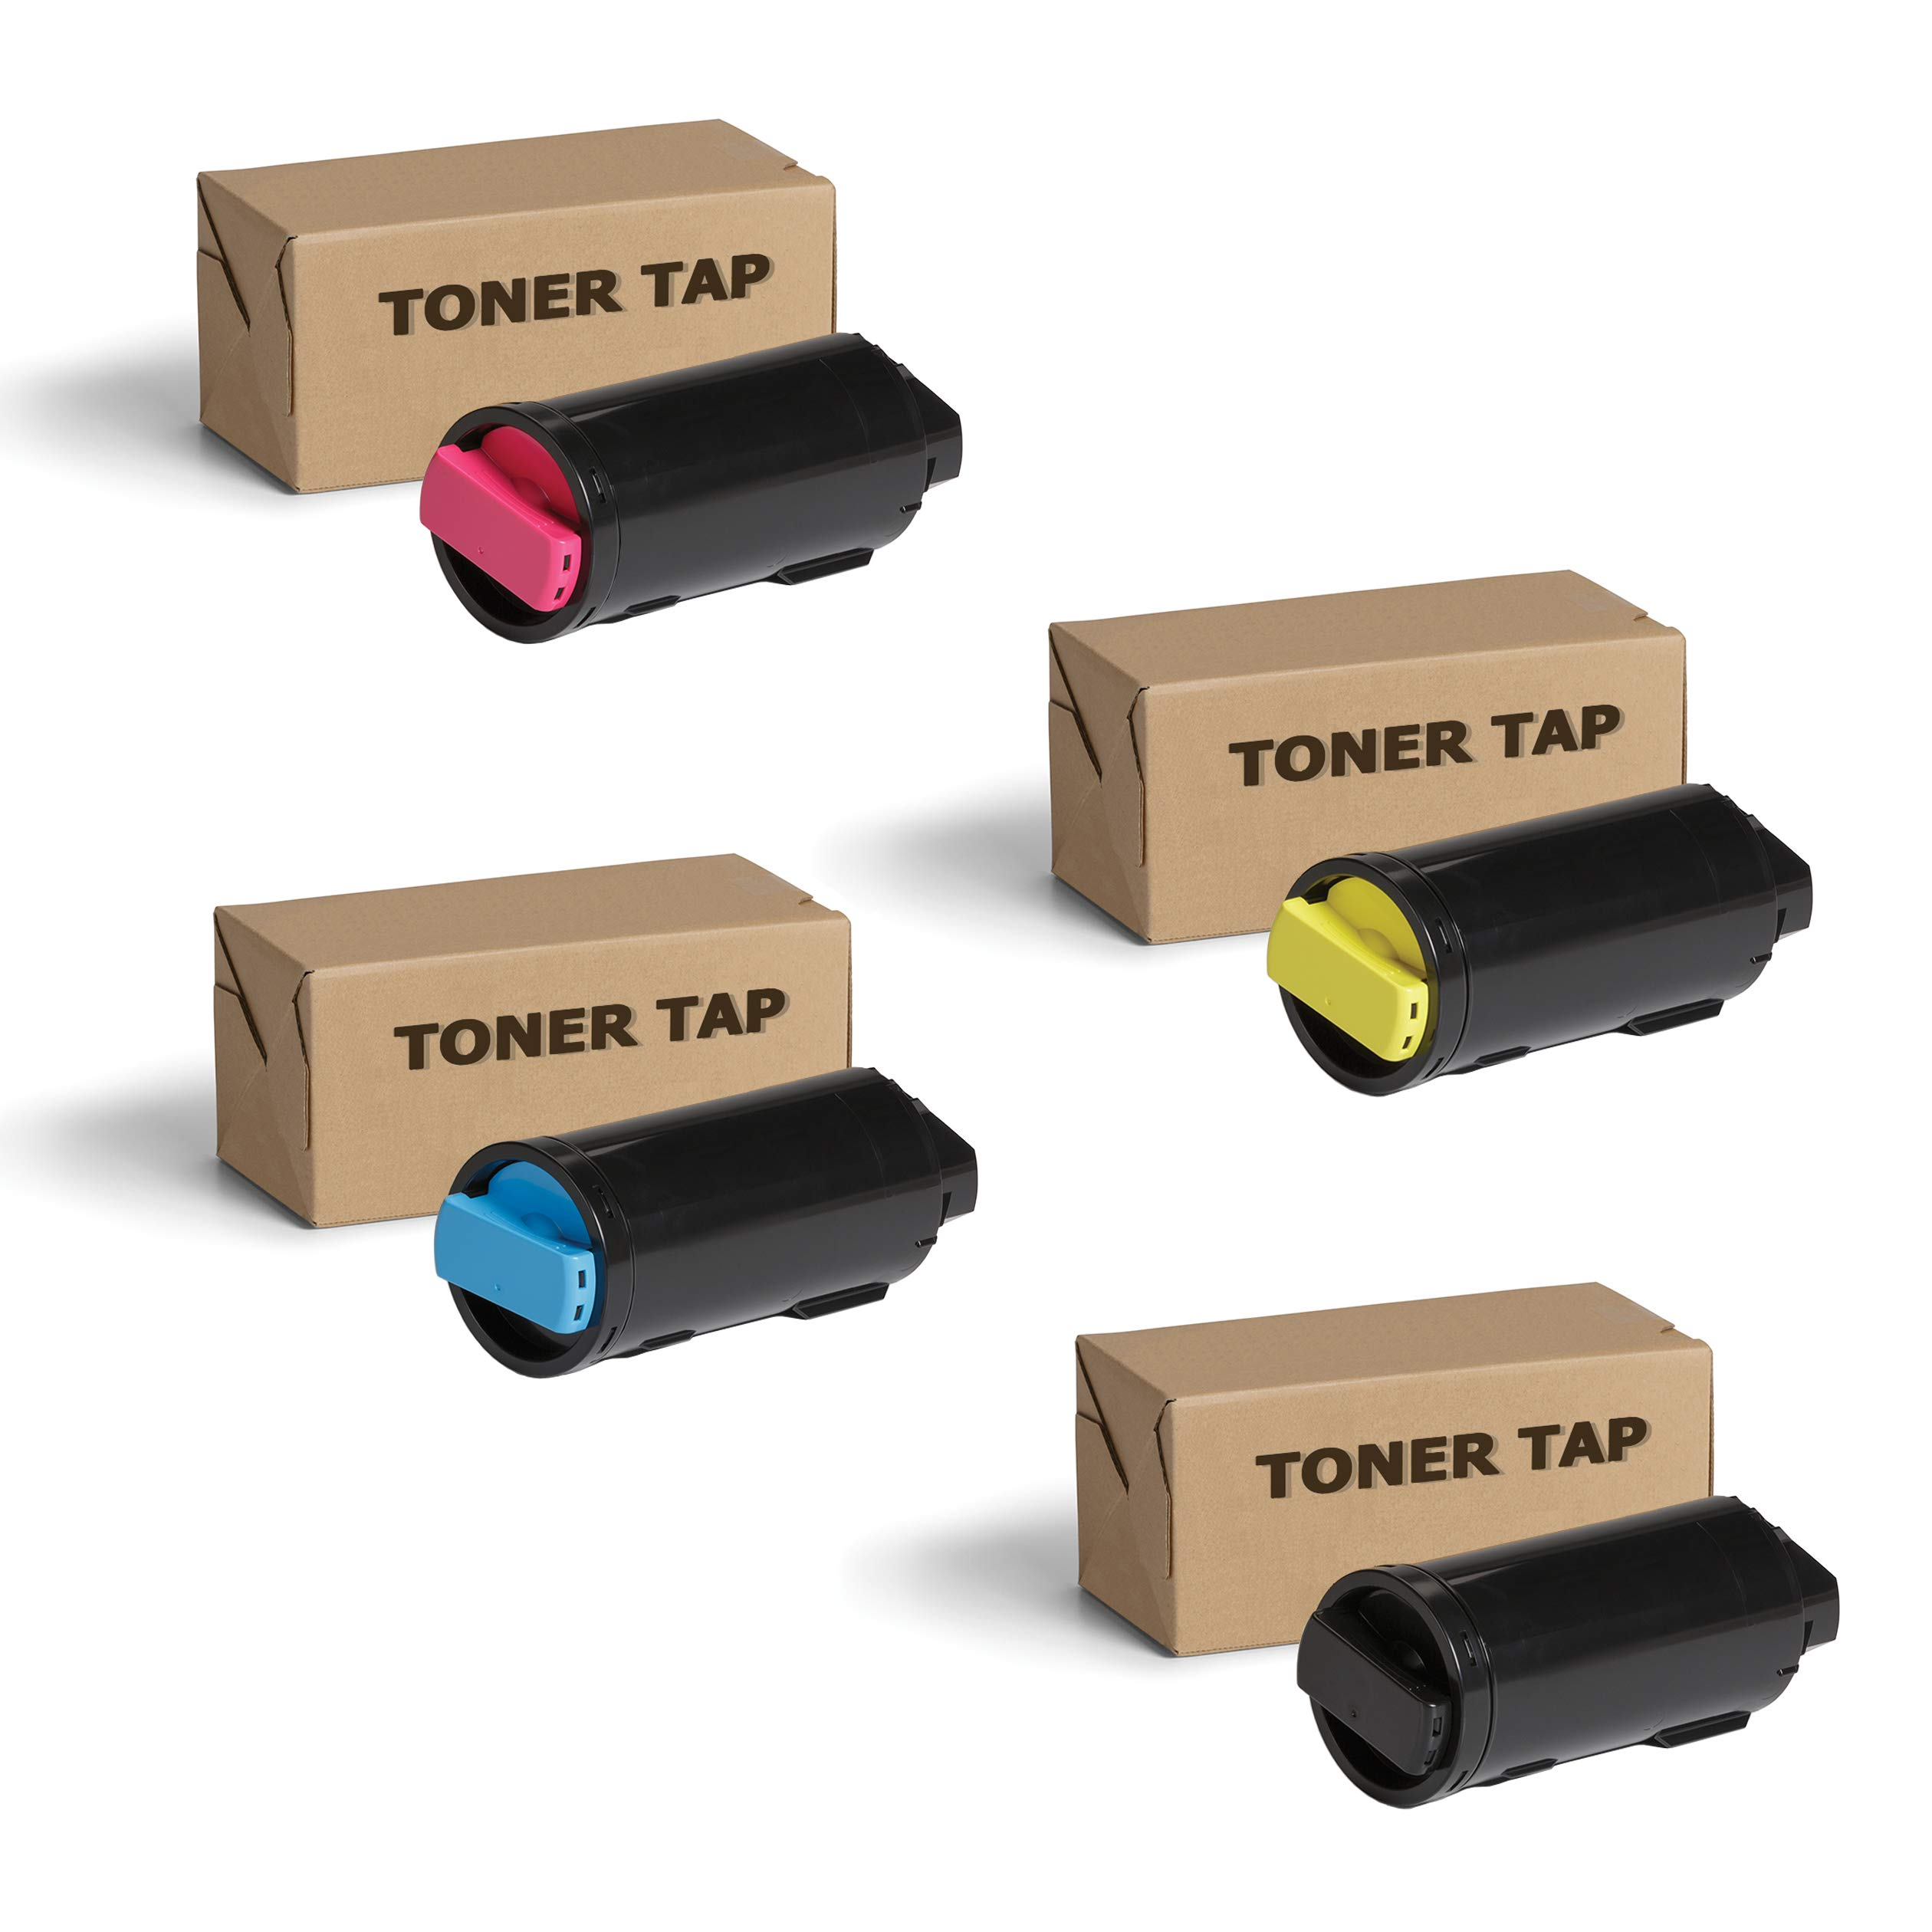 Toner Tap for Xerox Versalink C500 C500/DN C500/N C505 C505/DN C505/N Color Printers (4 Pack Bundle) - High Yield Compatible Toner Cartridge Set (OEM Part# 106R03862, 106R03863, 106R03864, 106R03865)